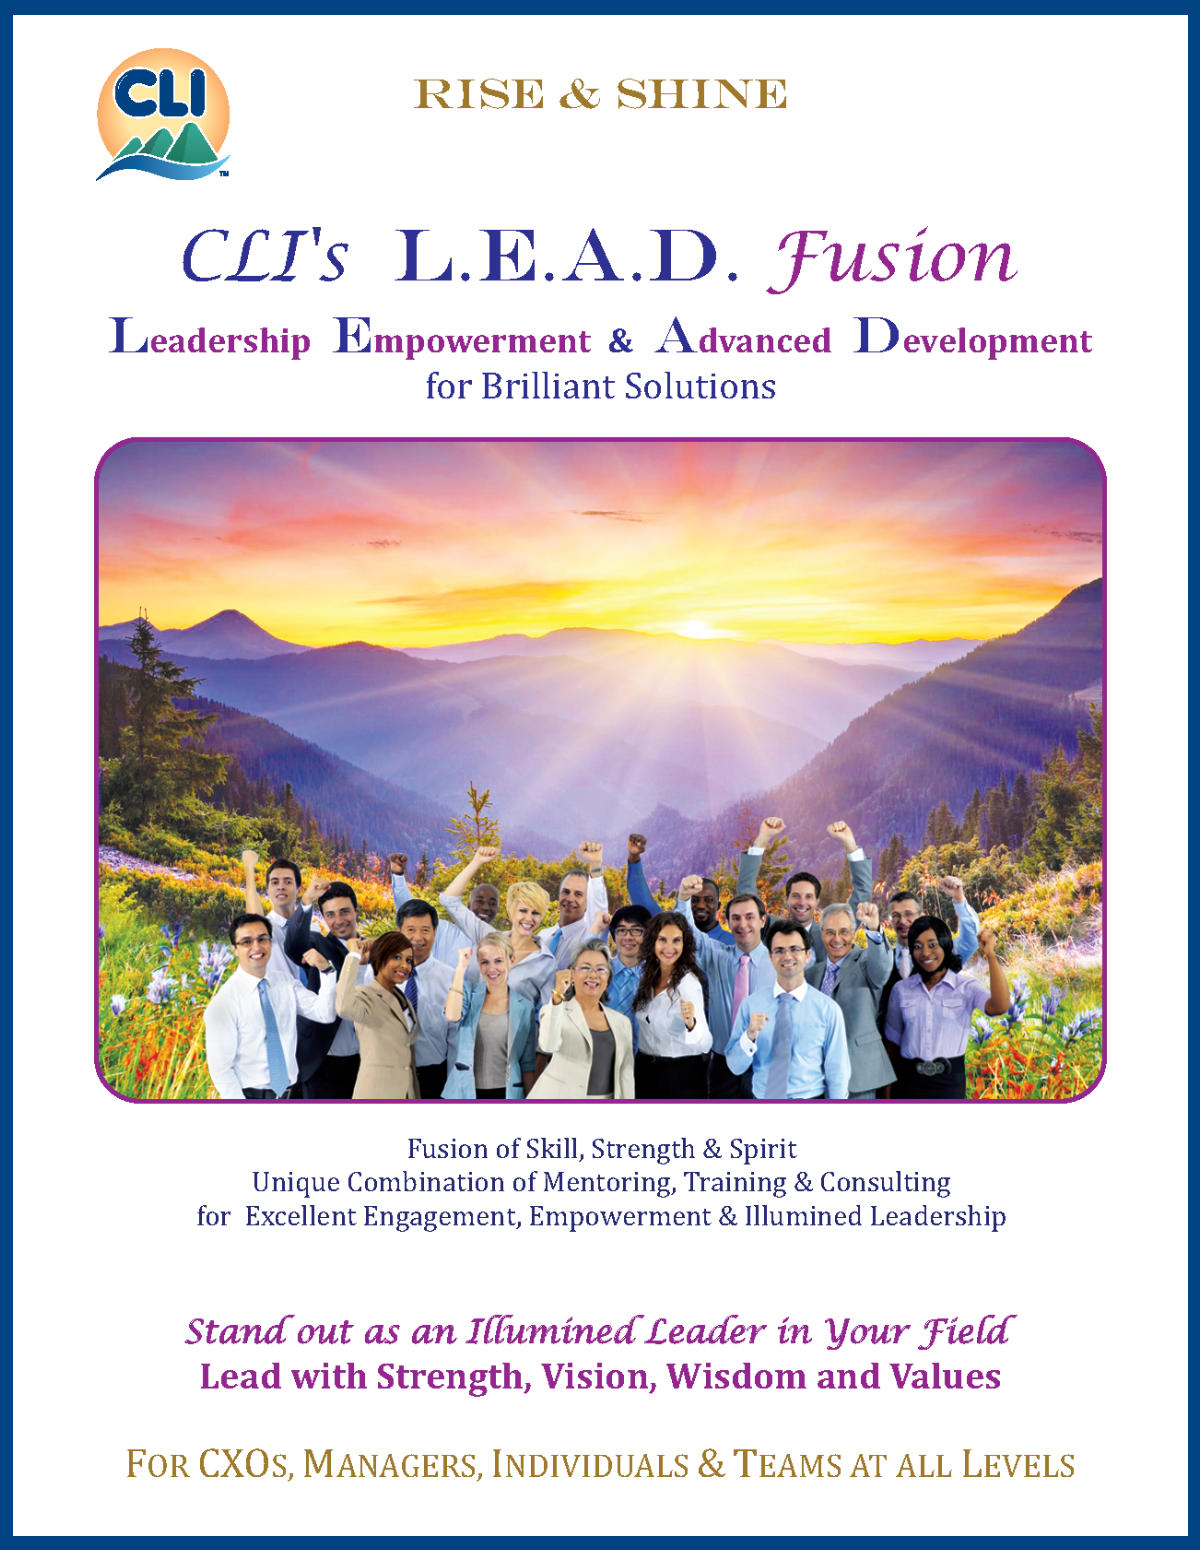 L.E.A.D.Fusion Brochure - Leadership Empowerment & Advanced Development for Brilliant Solutions